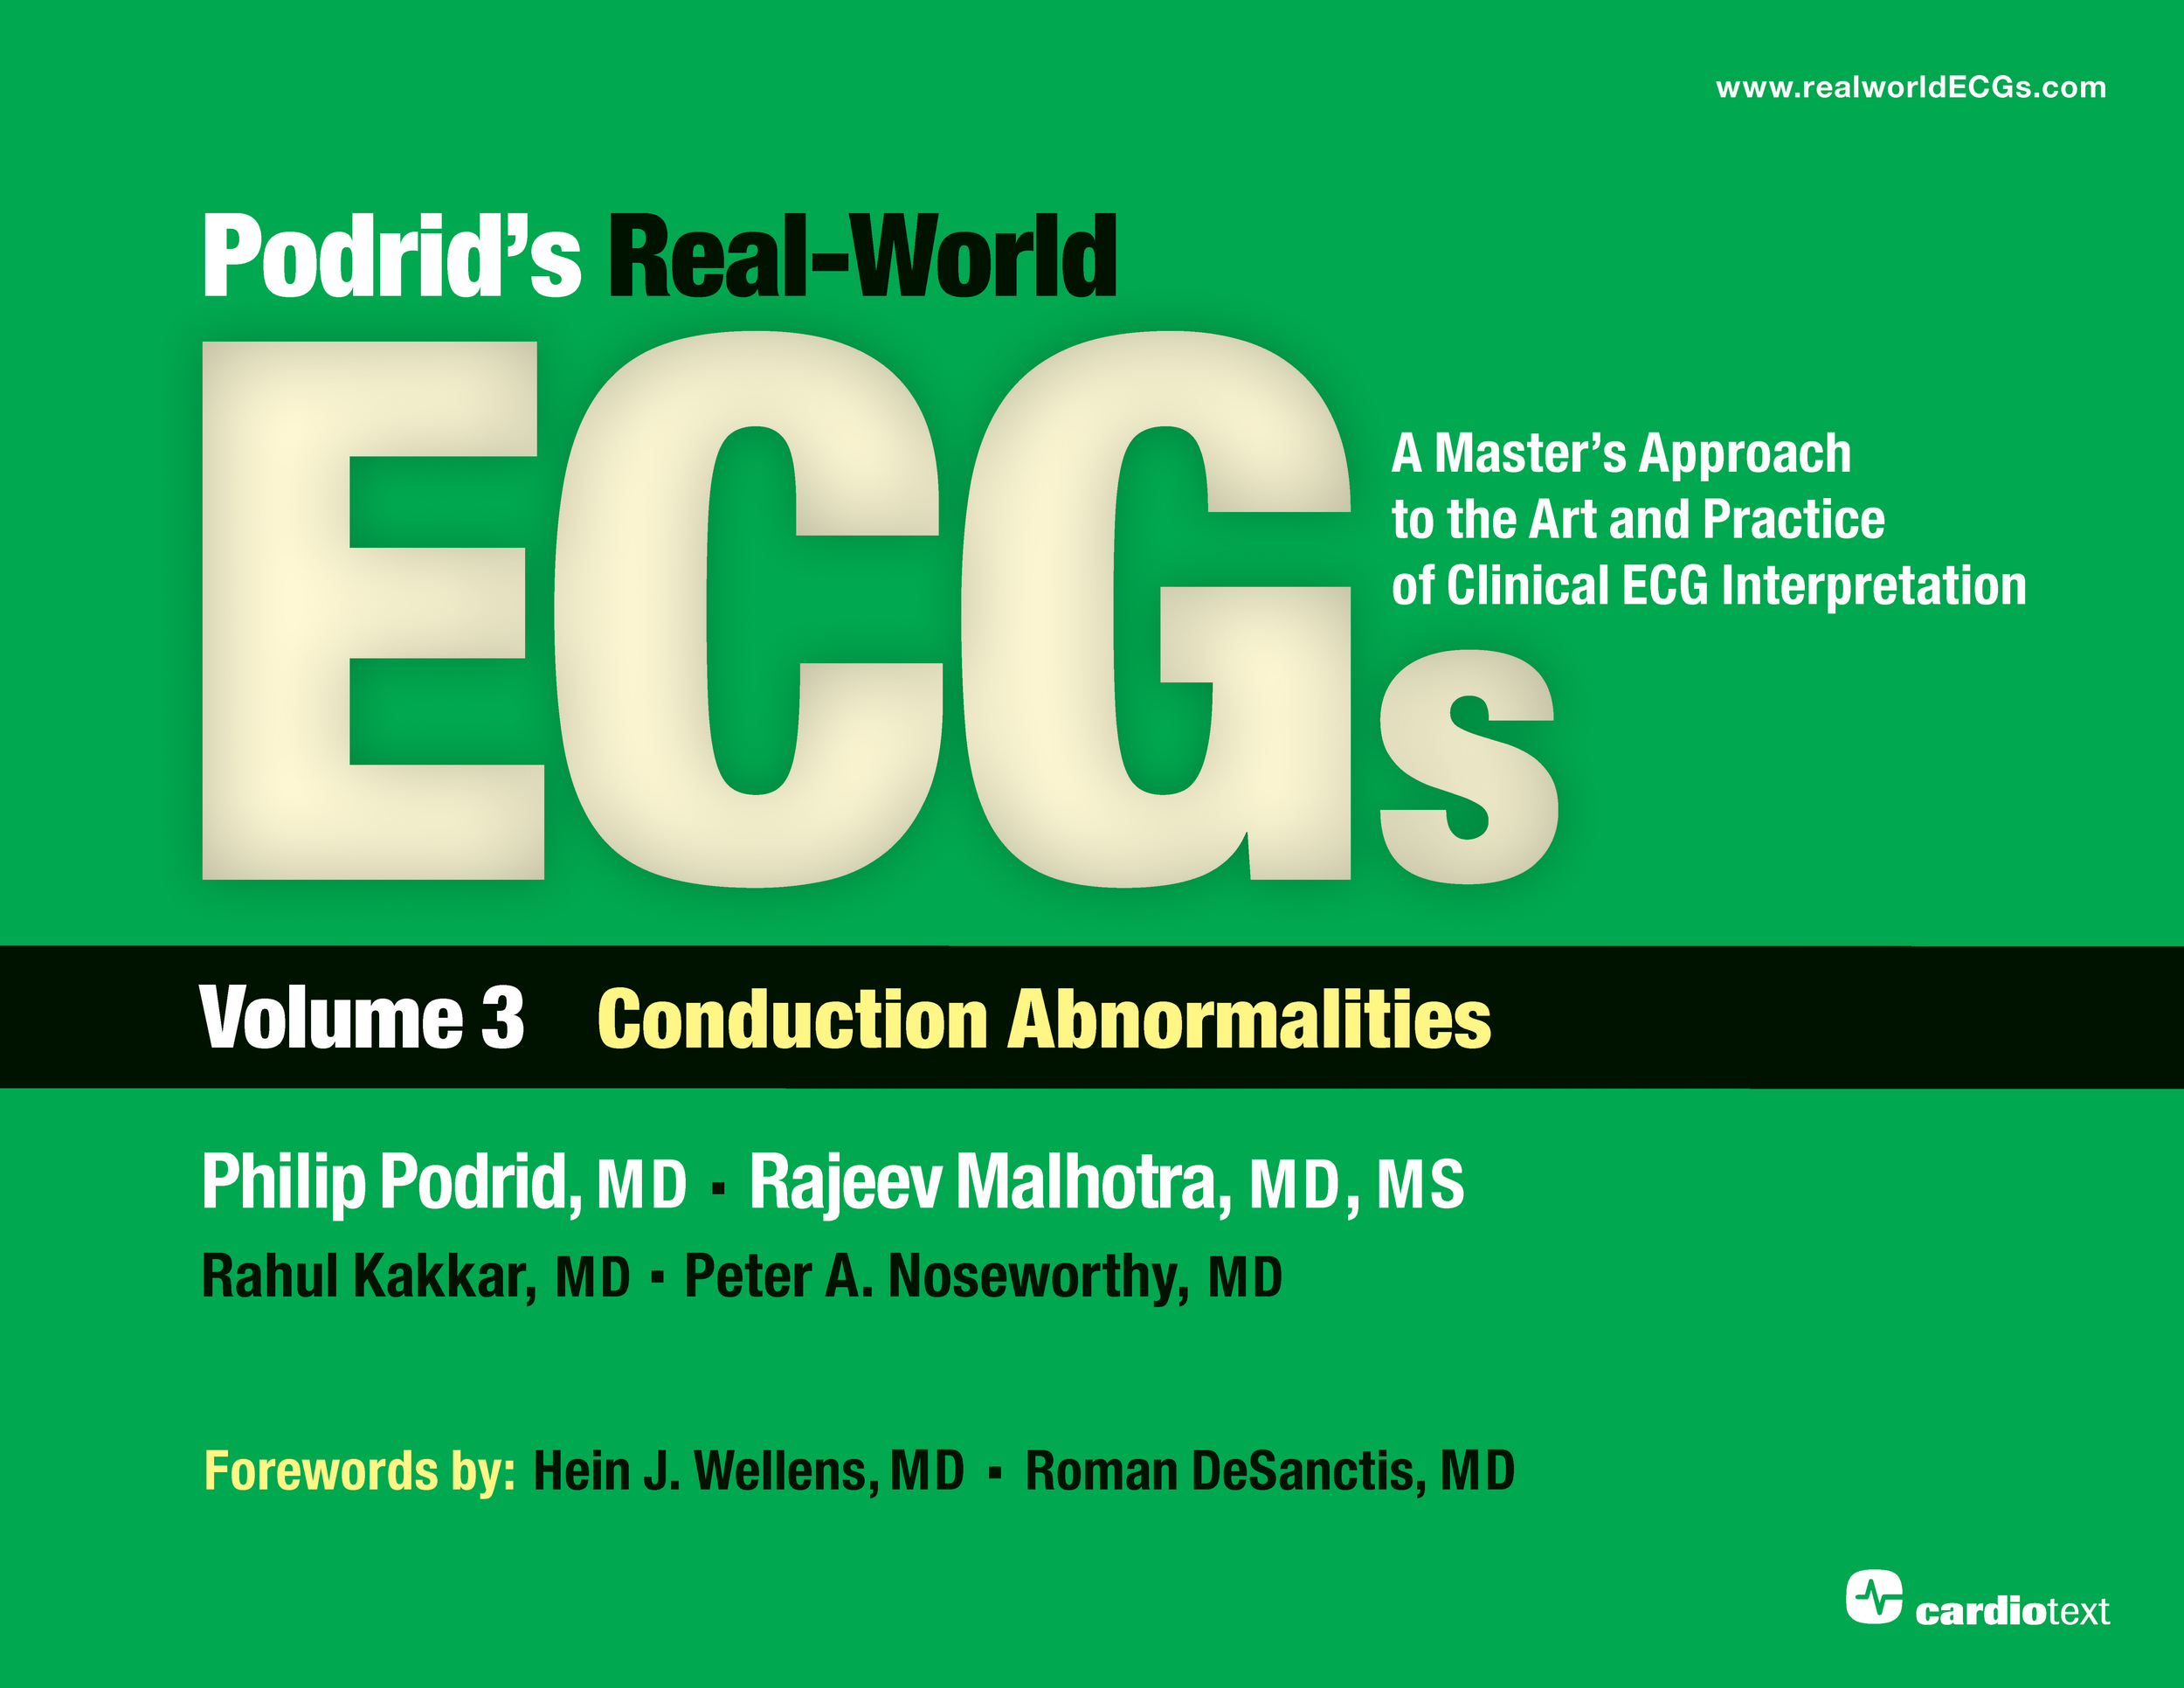 Podrid.v3 Real-World ECGs Conduction Abnormalities